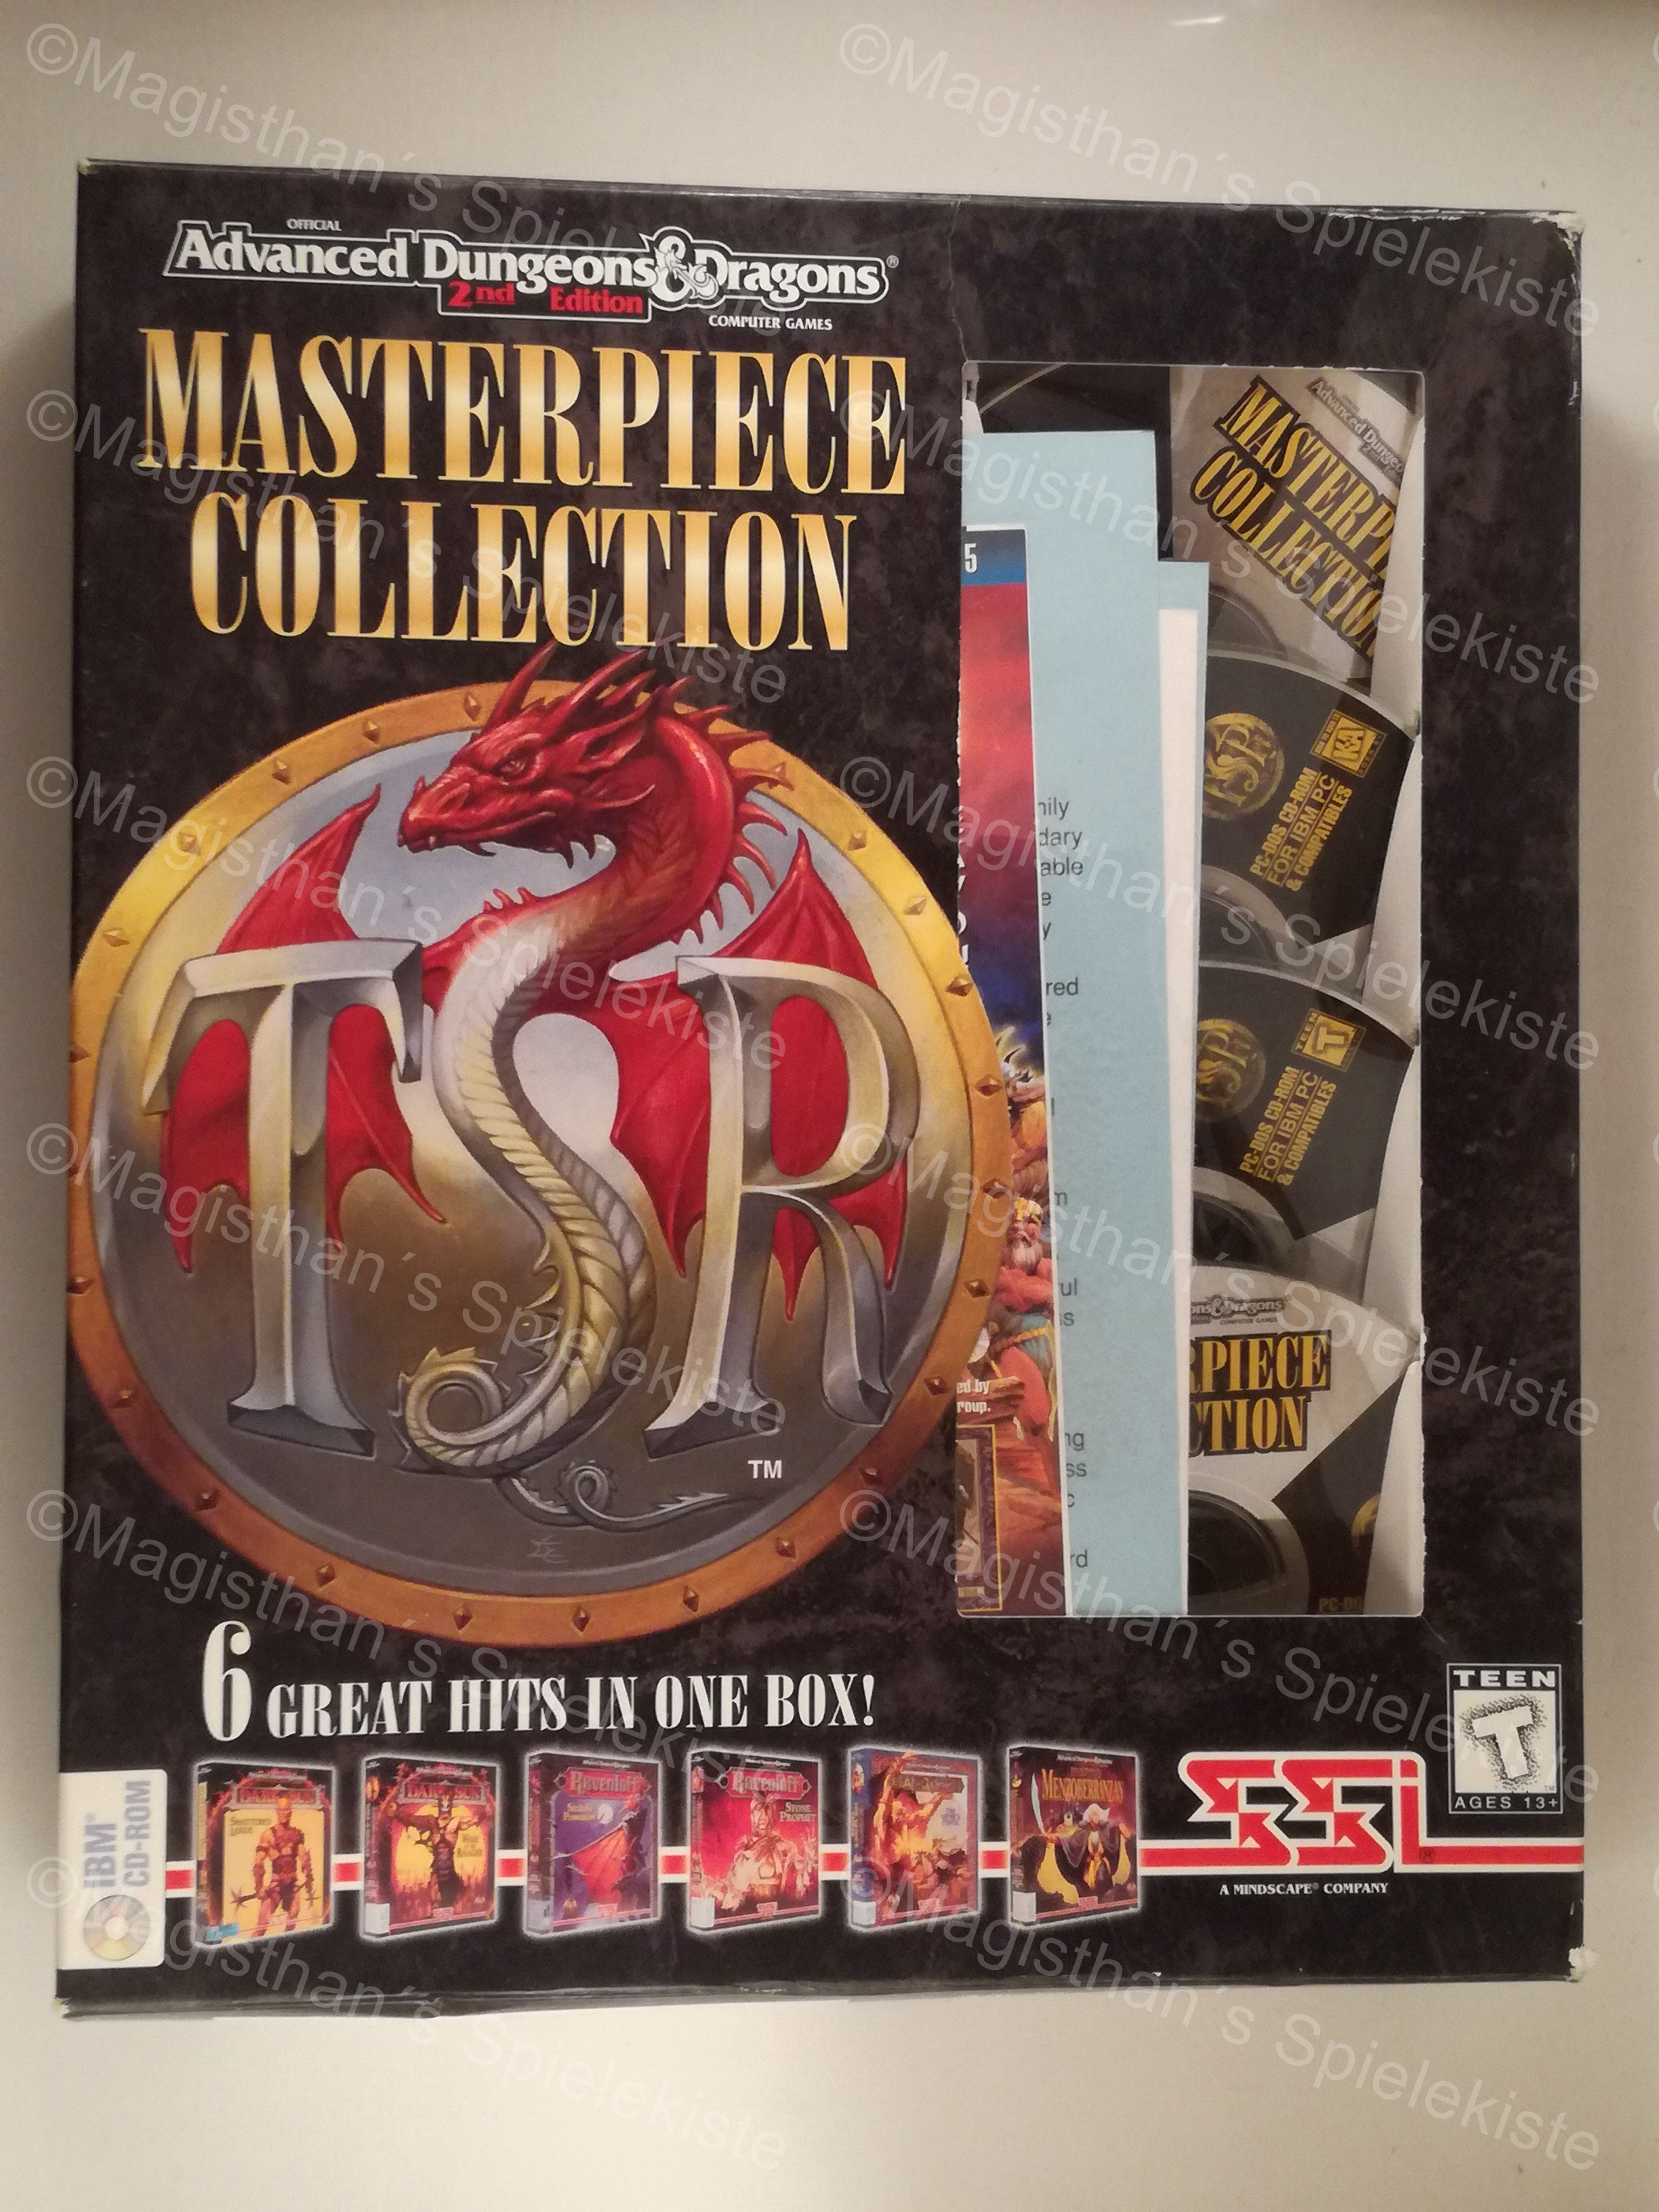 MasterpieceCollection1.jpg